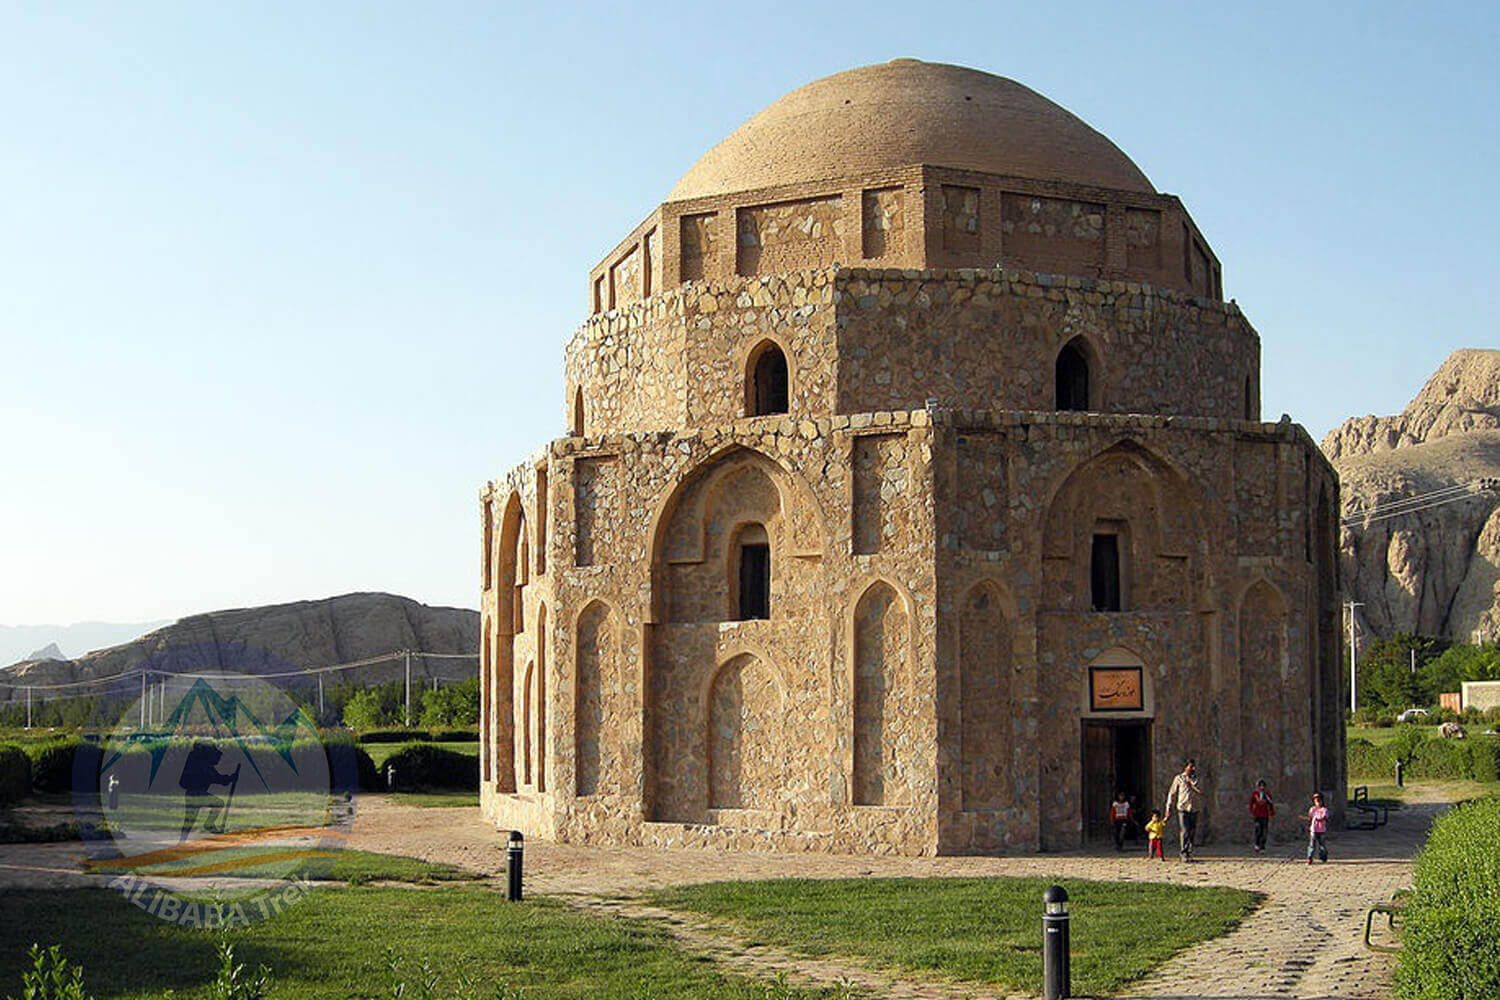 Alibabatrek iran tour kerman travel guide tours in kerman Jabalieh Dome